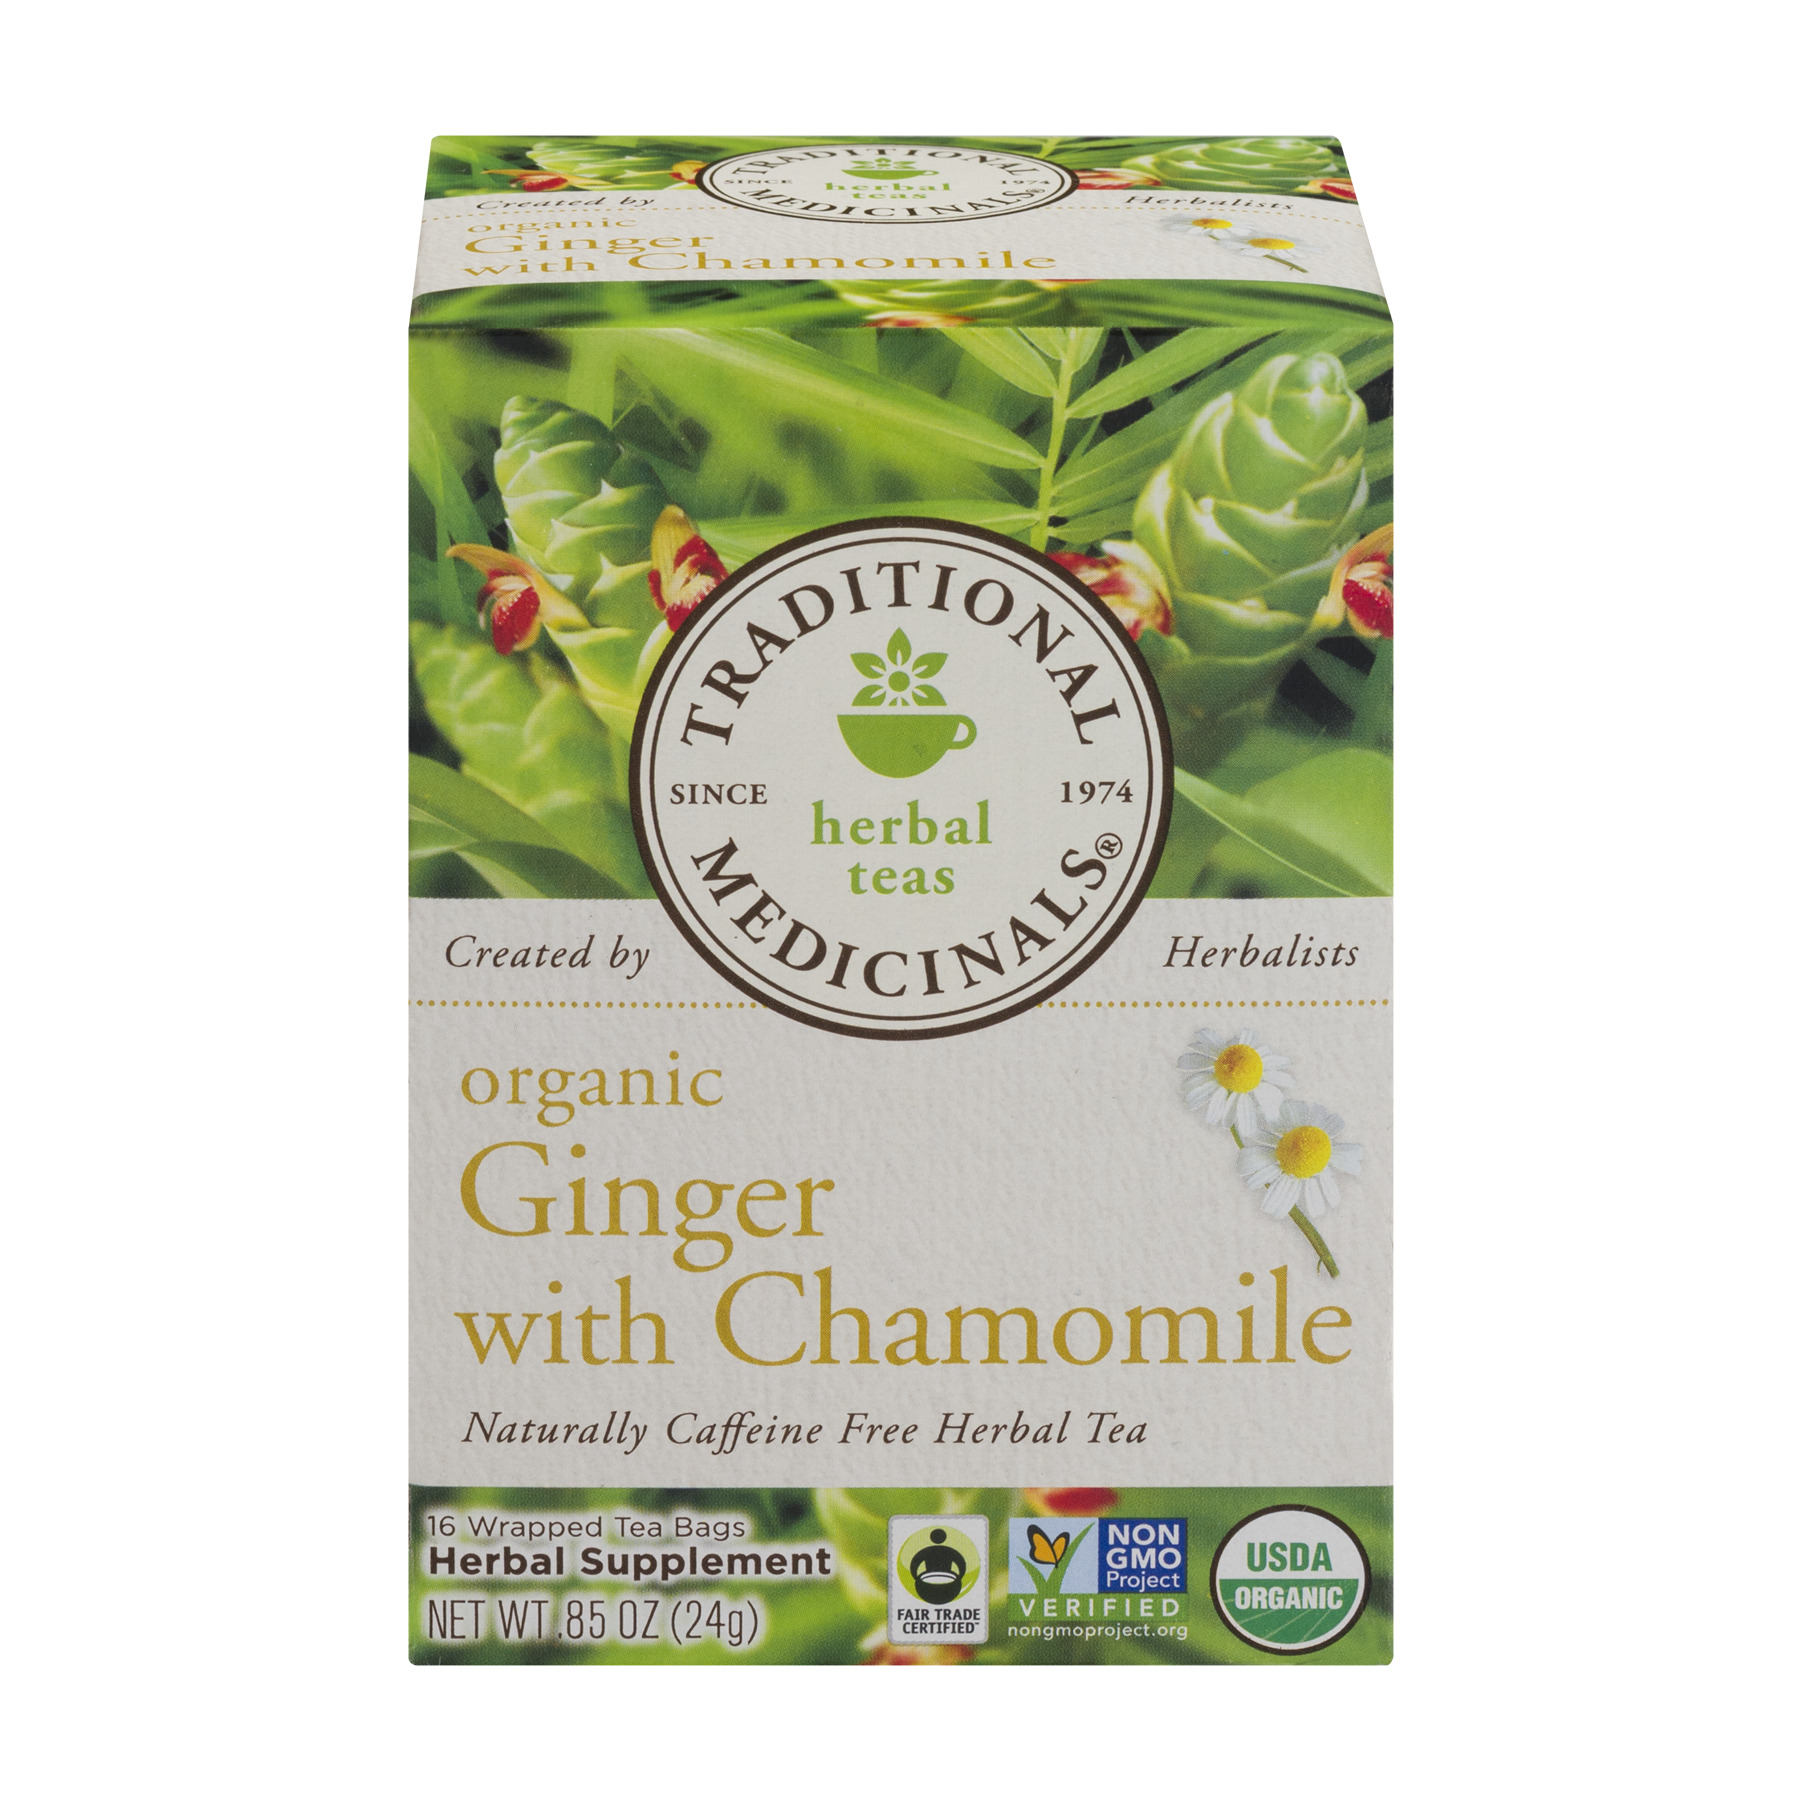 TRADITIONAL MEDICINAL GINGER WITH CHAMOMILE